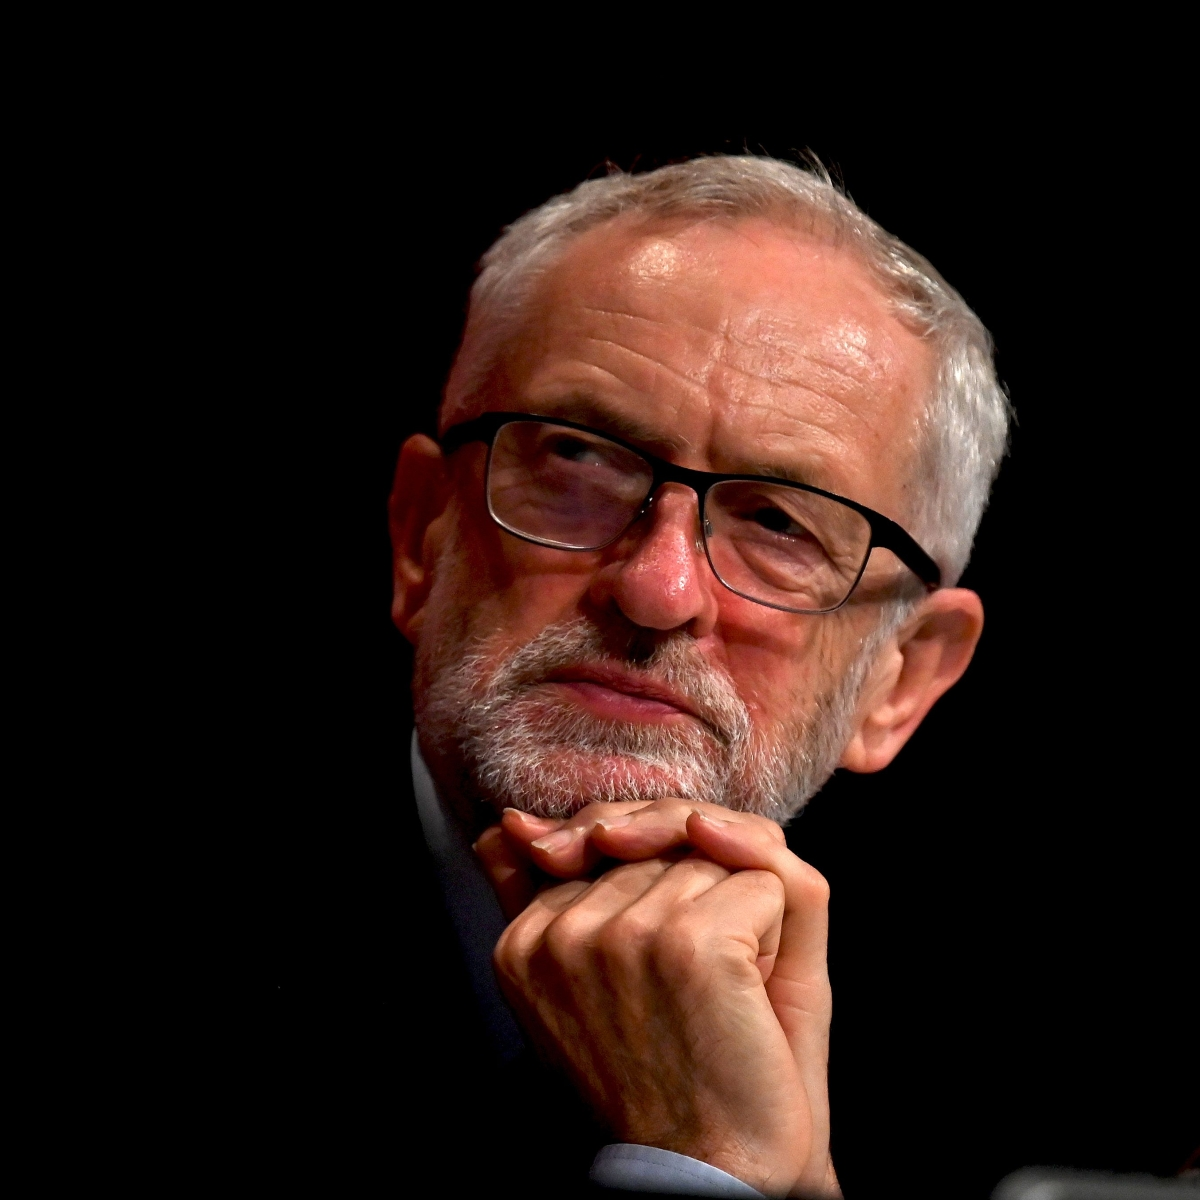 Labour leader Corbyn blames Brexit and media for the party's disastrous defeat since 1930s